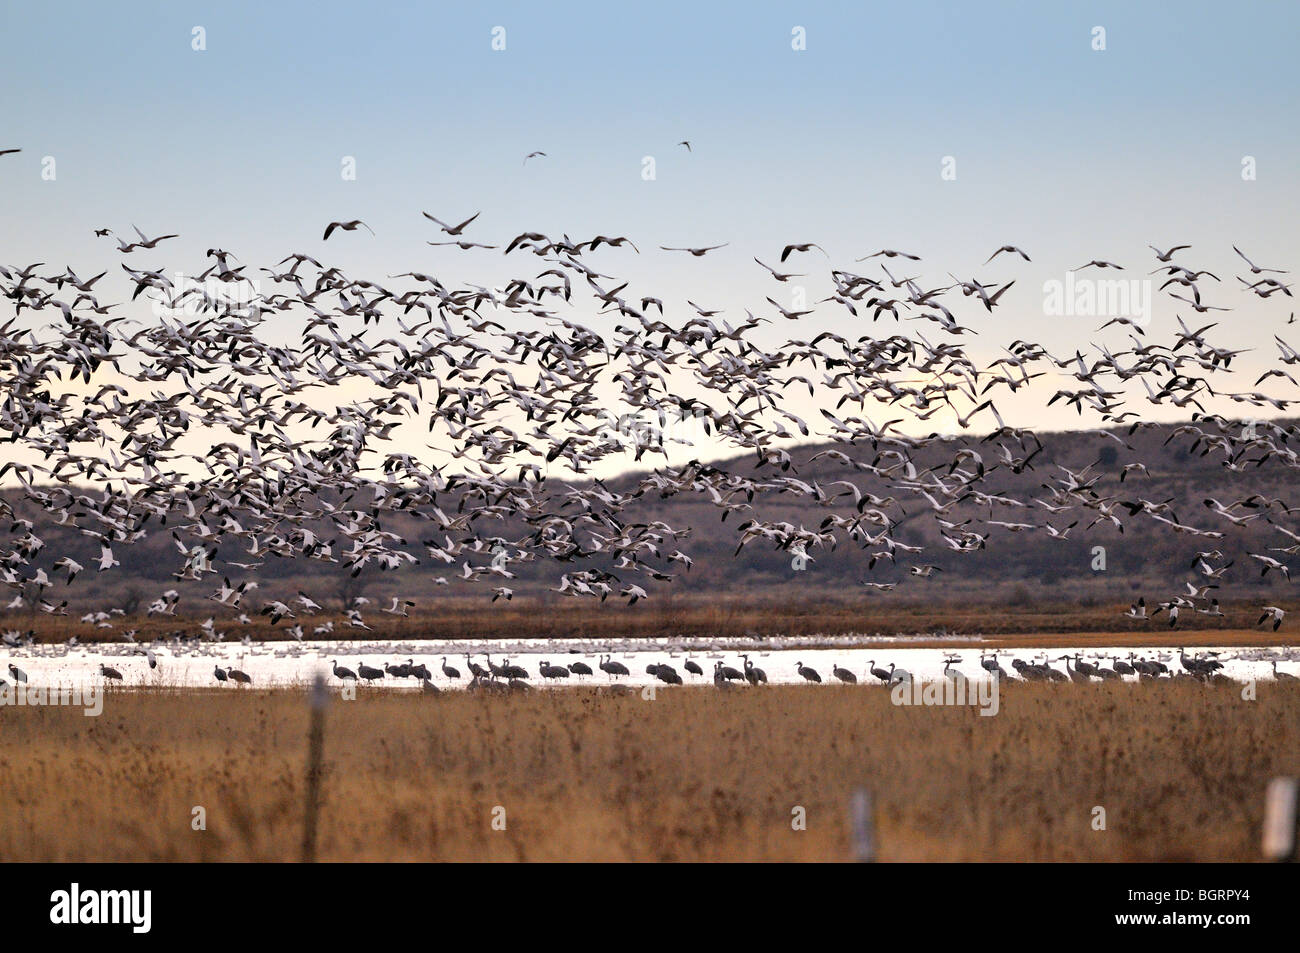 Snow Geese and Sandhill Cranes at Bosque - Stock Image